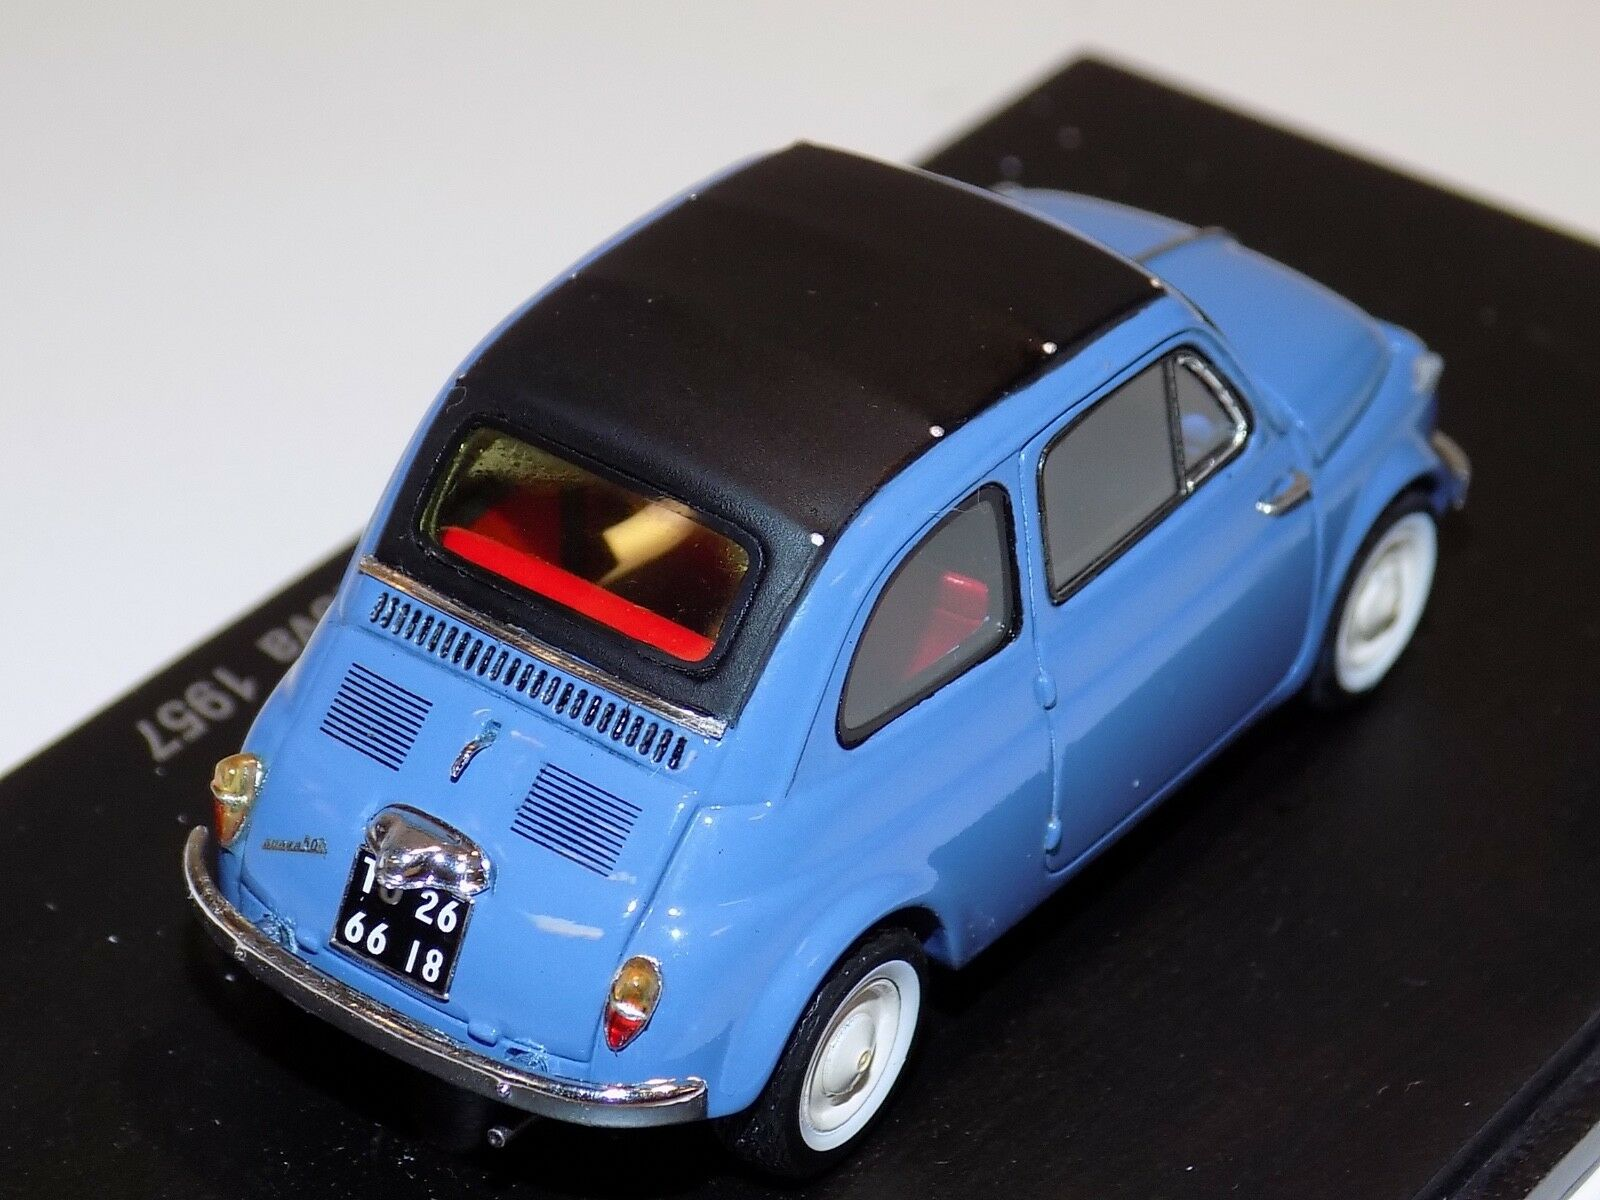 1 43 Spark  Fiat 500 Nuova from 1957 1957 1957 in bluee  S2690 978b5b